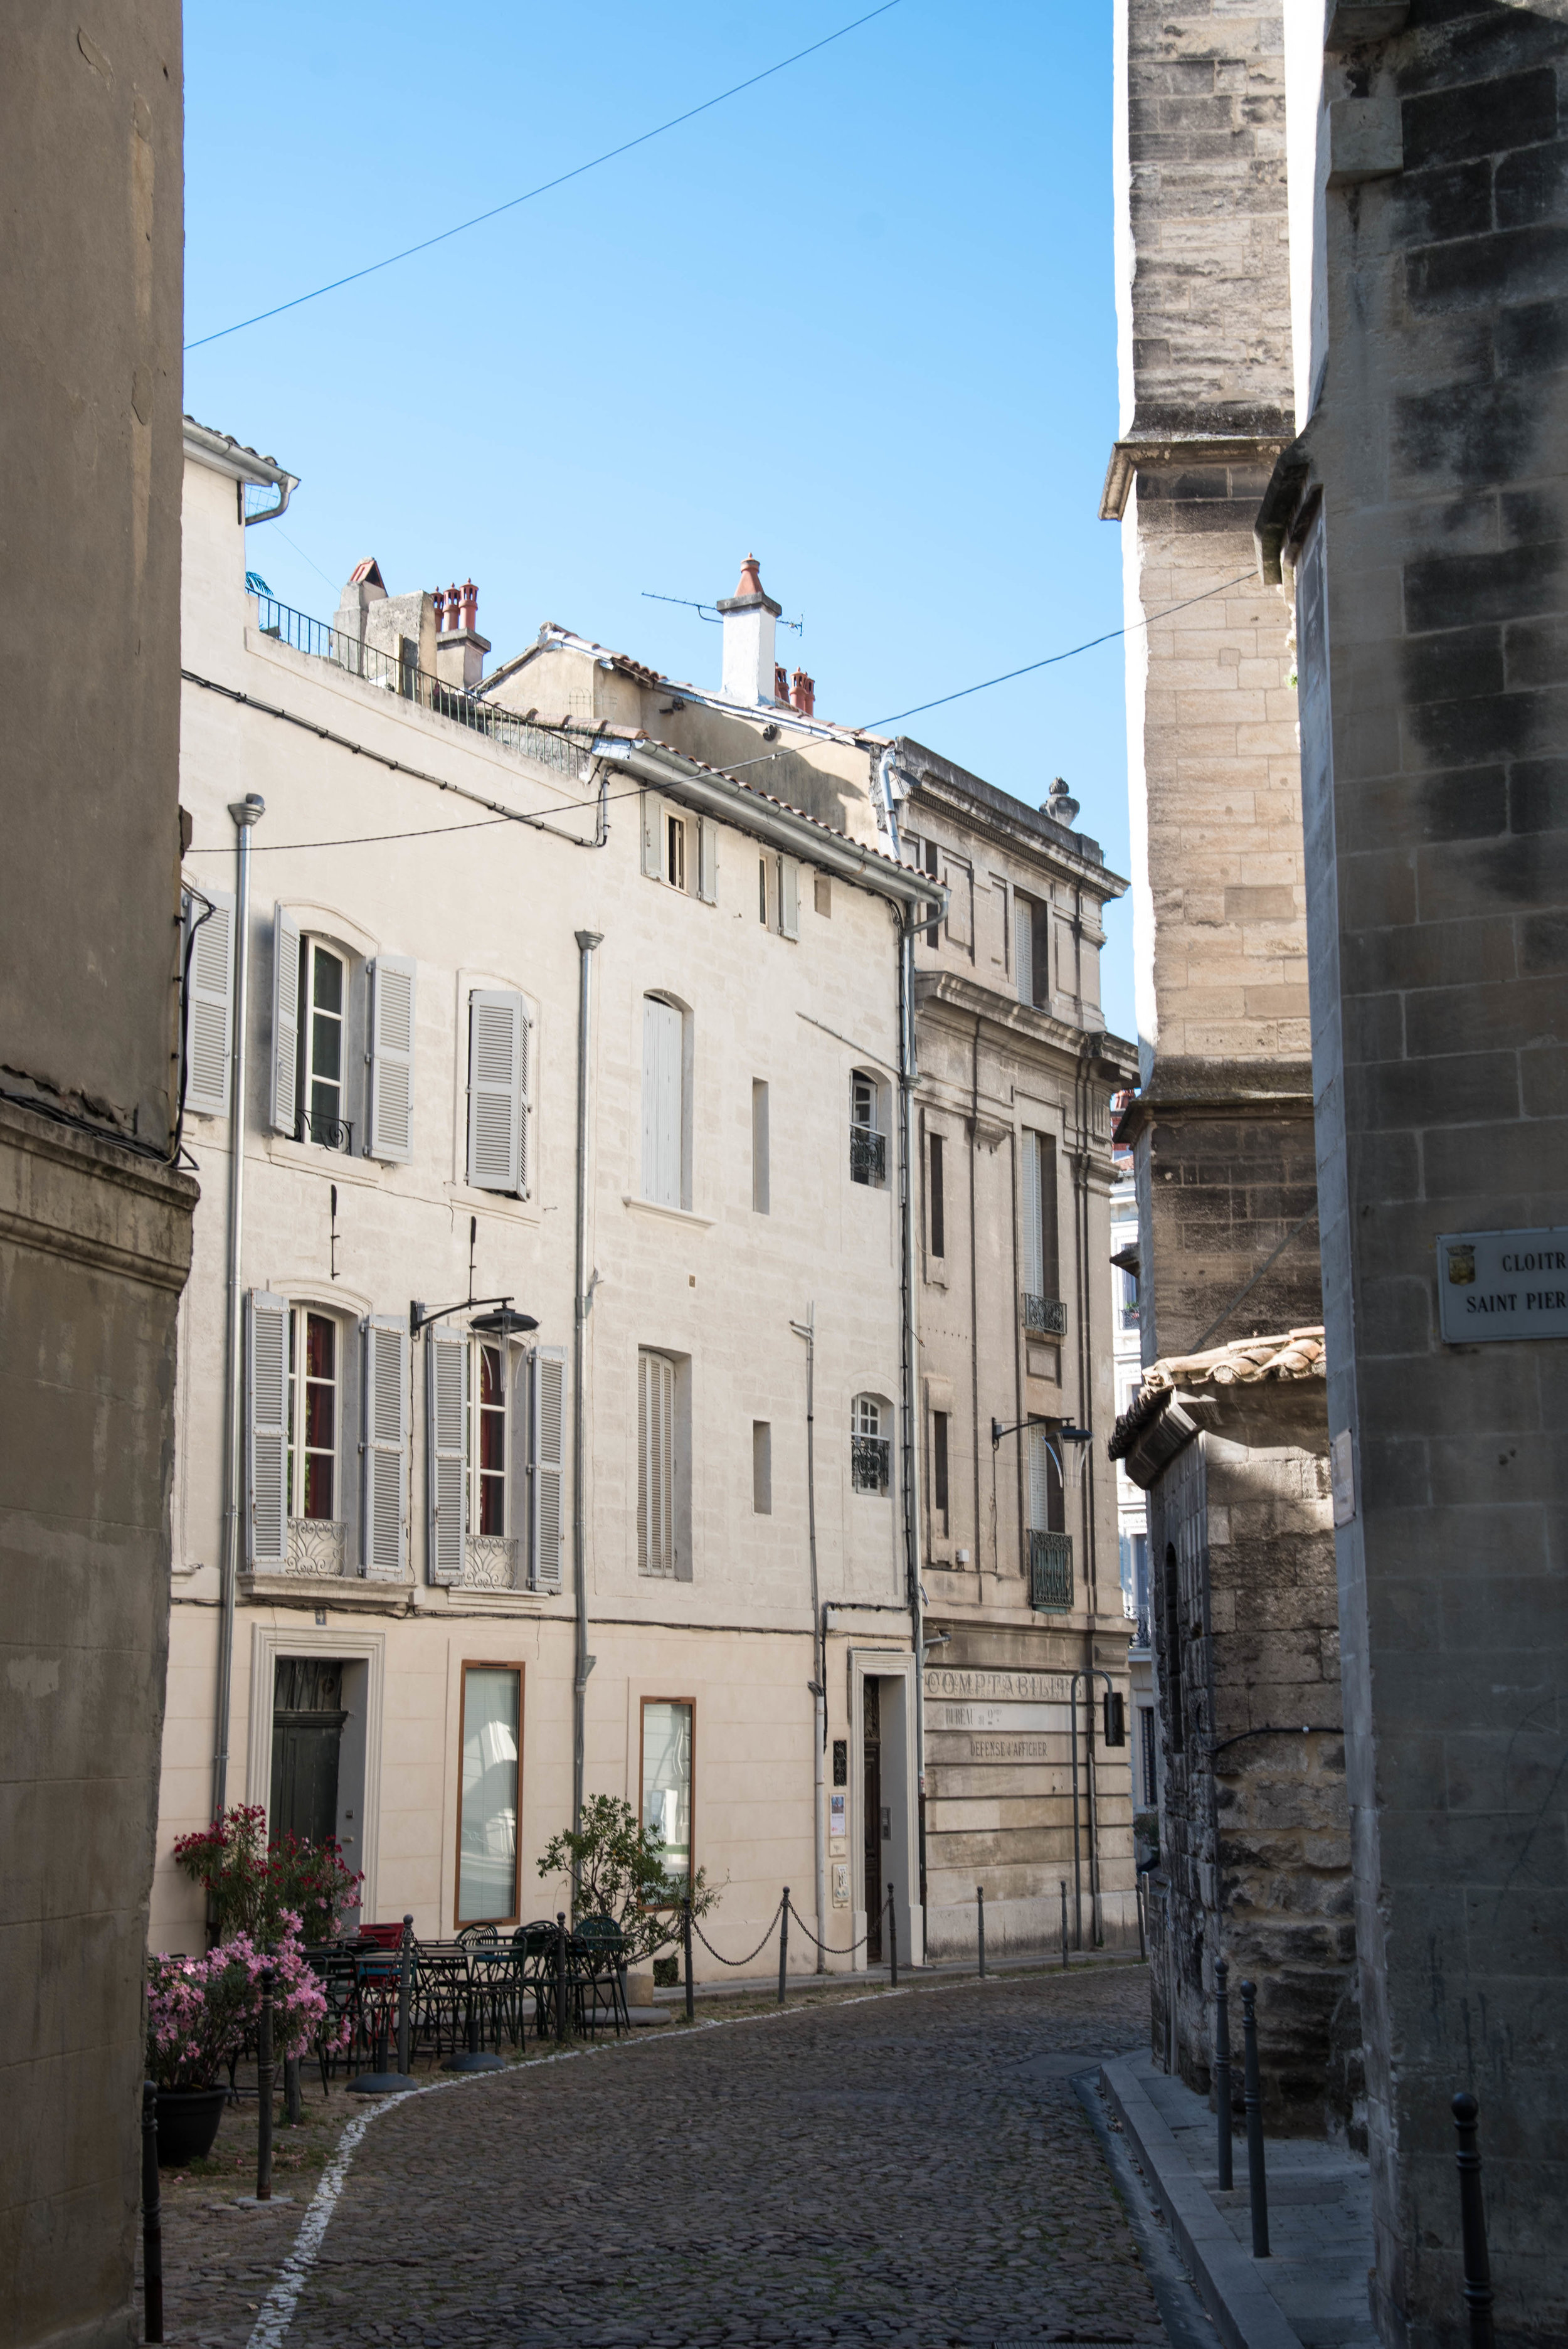 Escape to Avignon - R&I Travels to the Historical Town in France